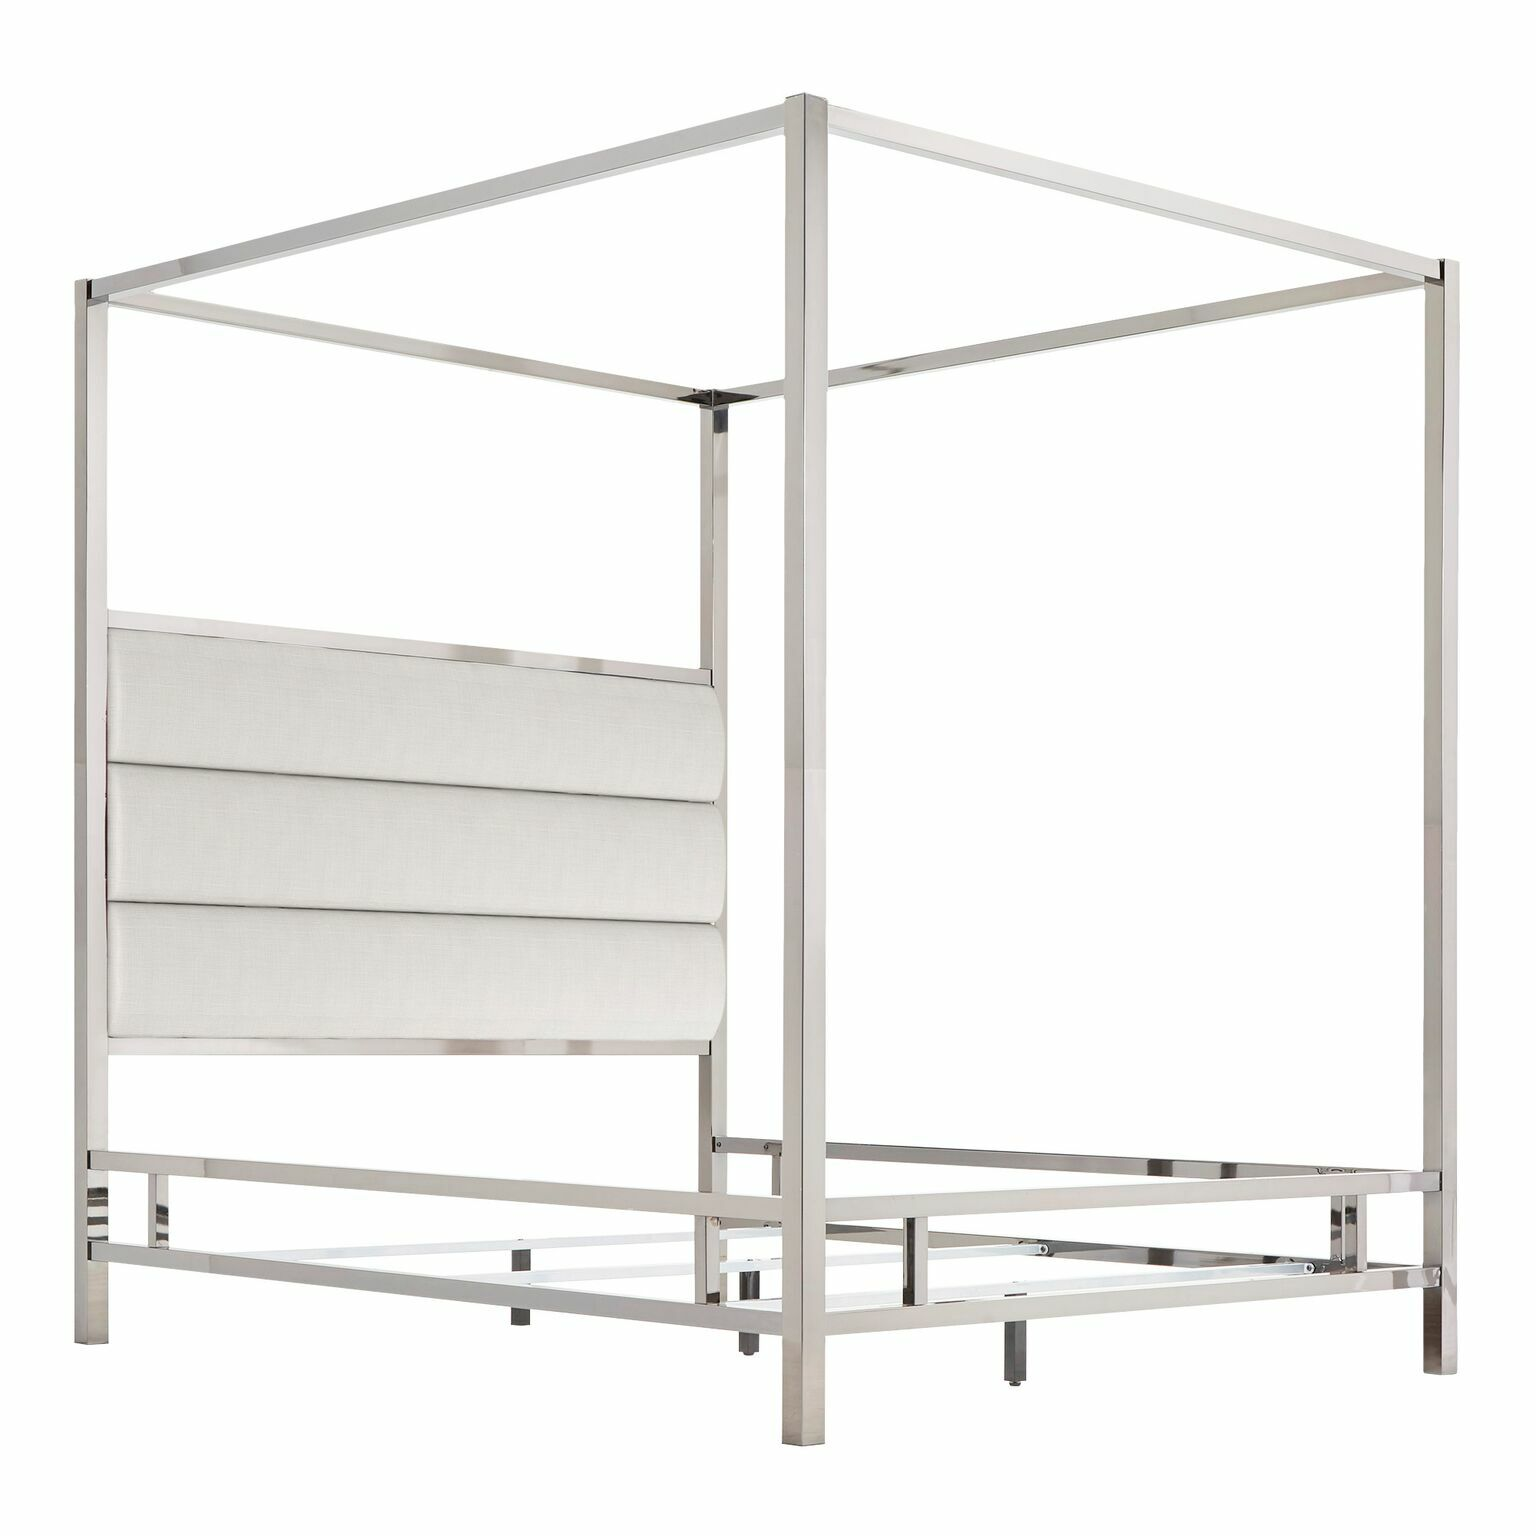 Wicklund Upholstered Canopy Bed Color (Frame/Headboard): Chrome Metal/White, Size: King